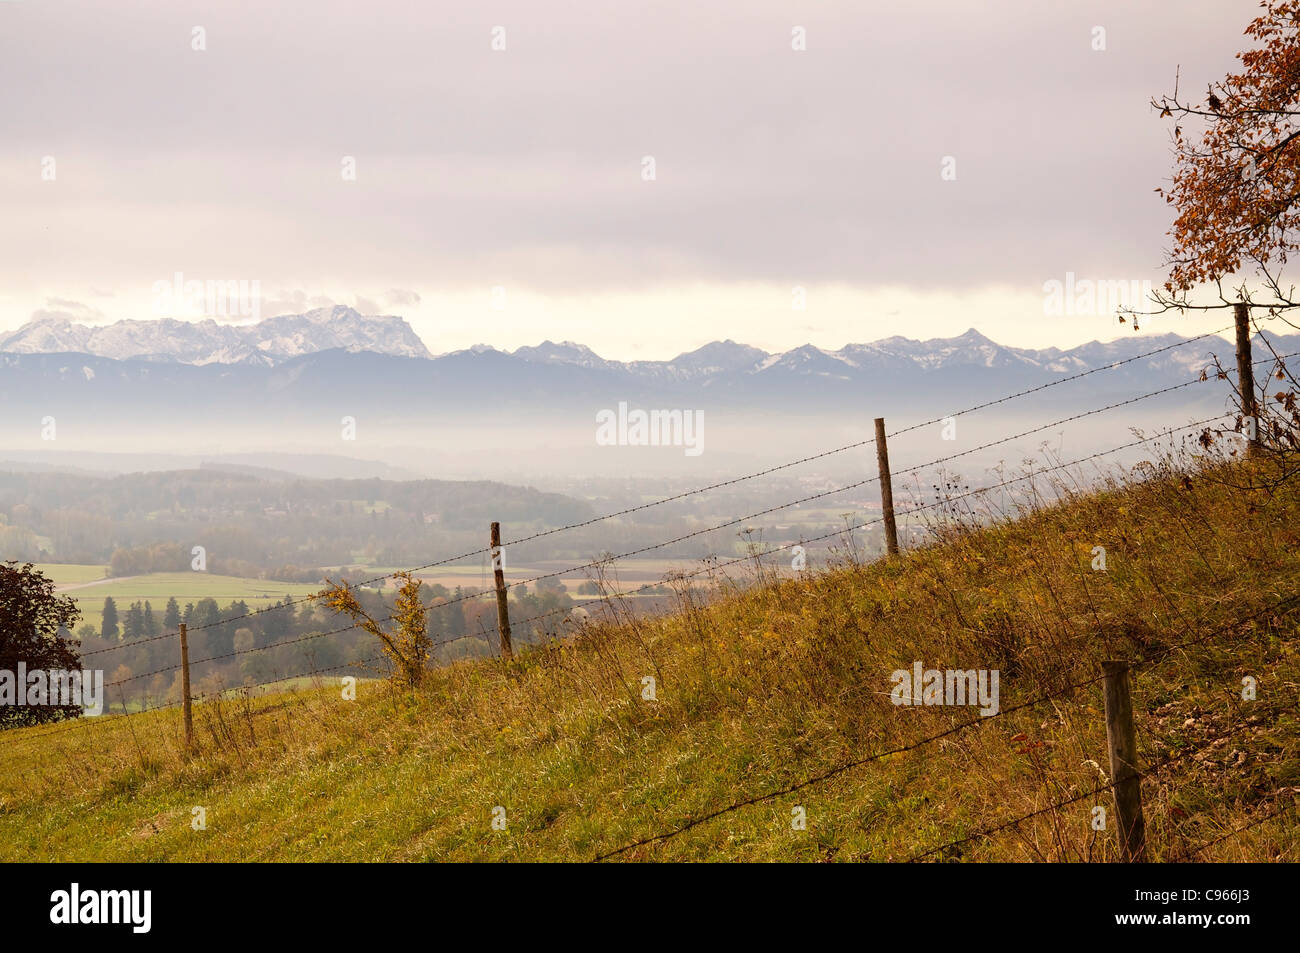 View from the bavarian alpine upland to the Alps in early fall - Stock Image